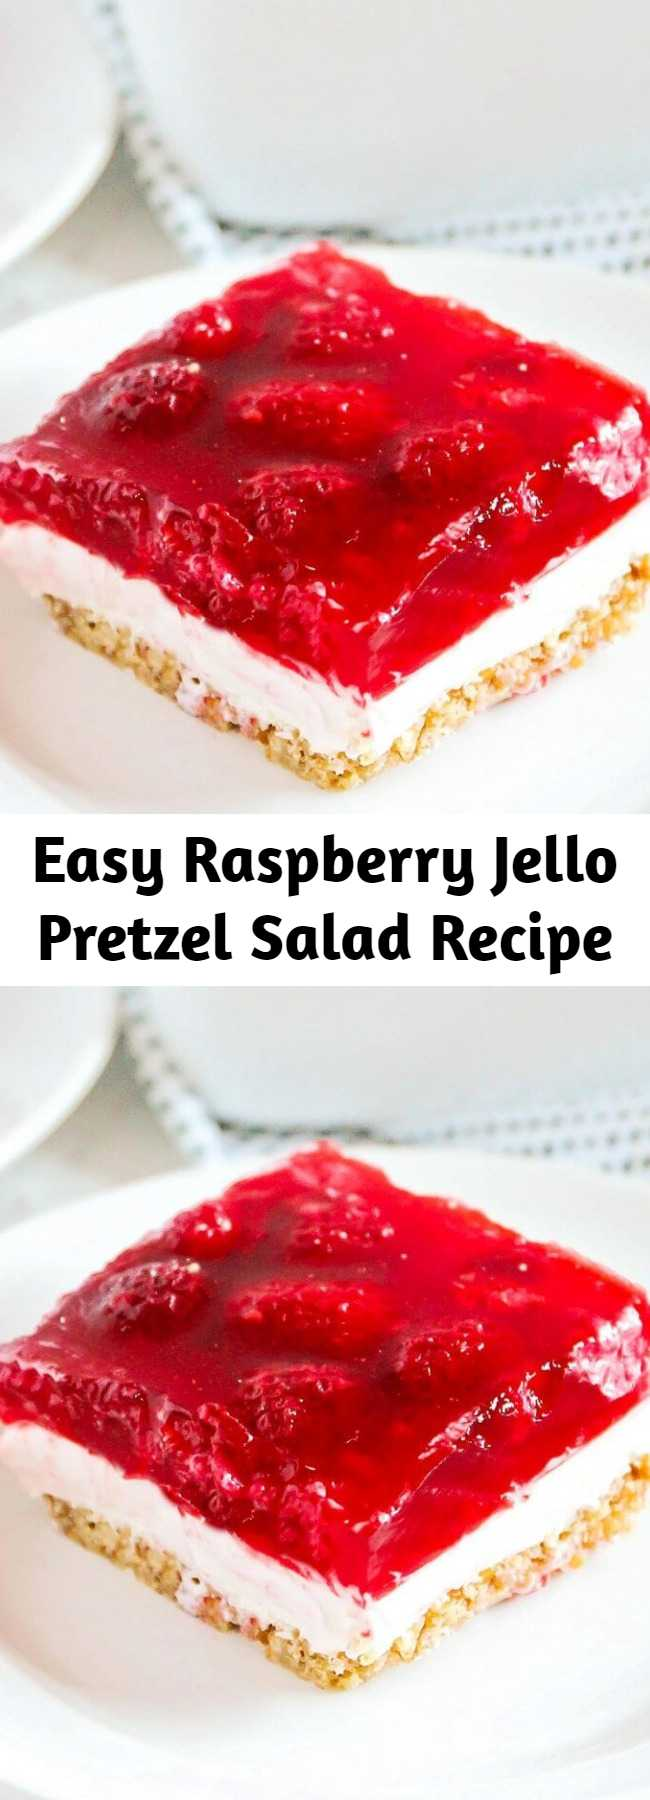 Easy Raspberry Jello Pretzel Salad Recipe - One of my favorite jello salad recipes! The cream cheese mixture and salted pretzel crust mixed with the raspberry jello is the perfect combo. A little sweet, a little salty and a LOT of deliciousness! #berries #jello #creamcheese #cheesecake #pretzels #thanksgiving #dessert #holidaydessert